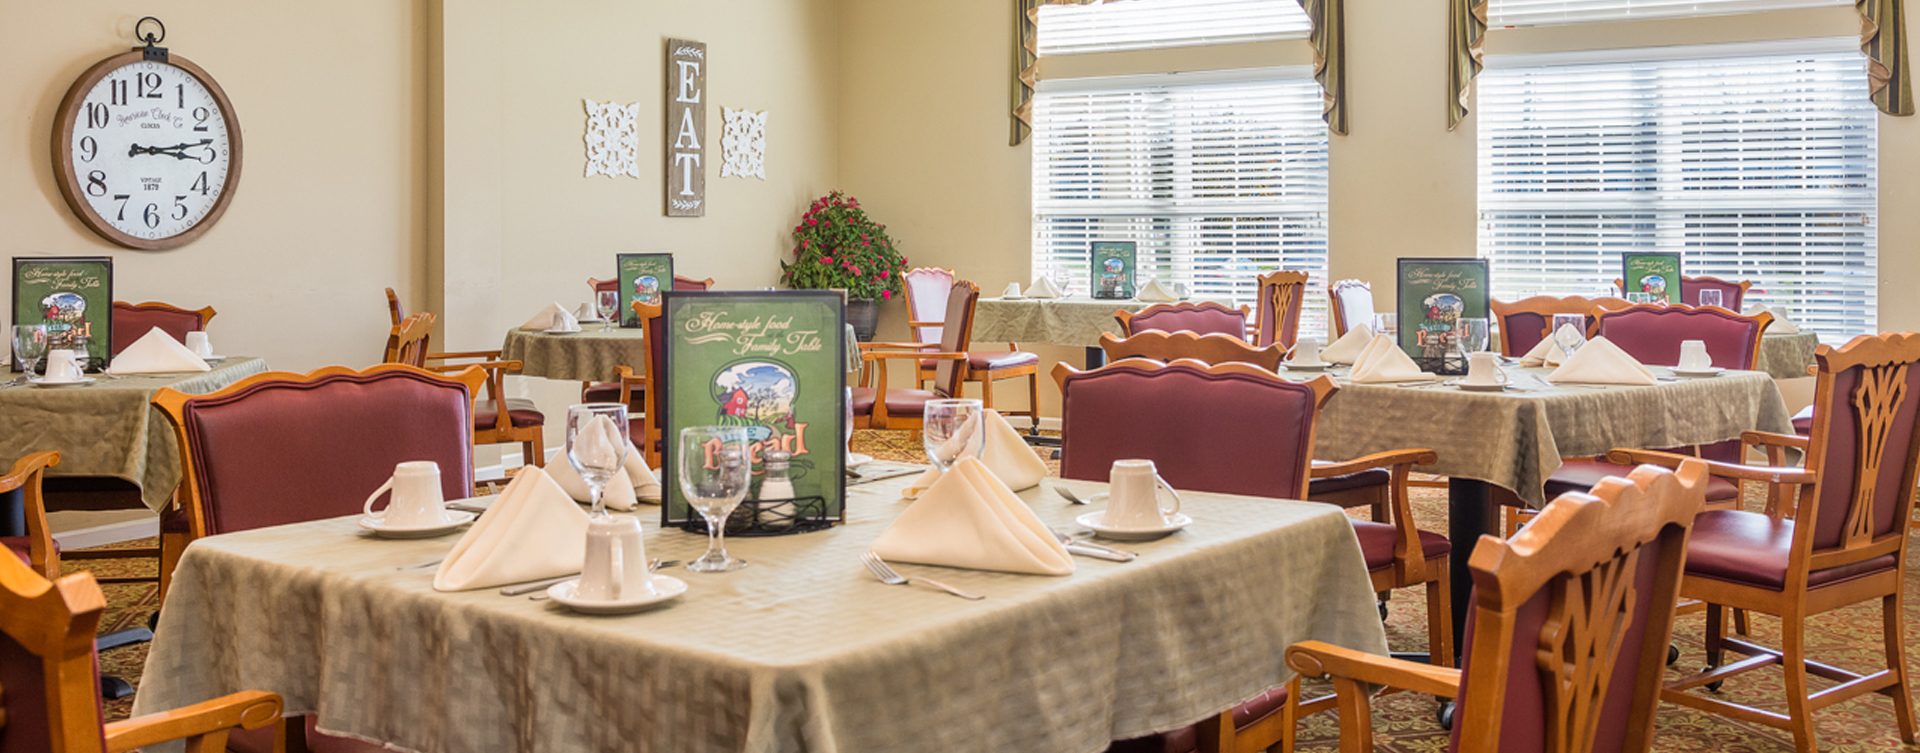 Enjoy homestyle food with made-from-scratch recipes in our dining room at Bickford of Ames